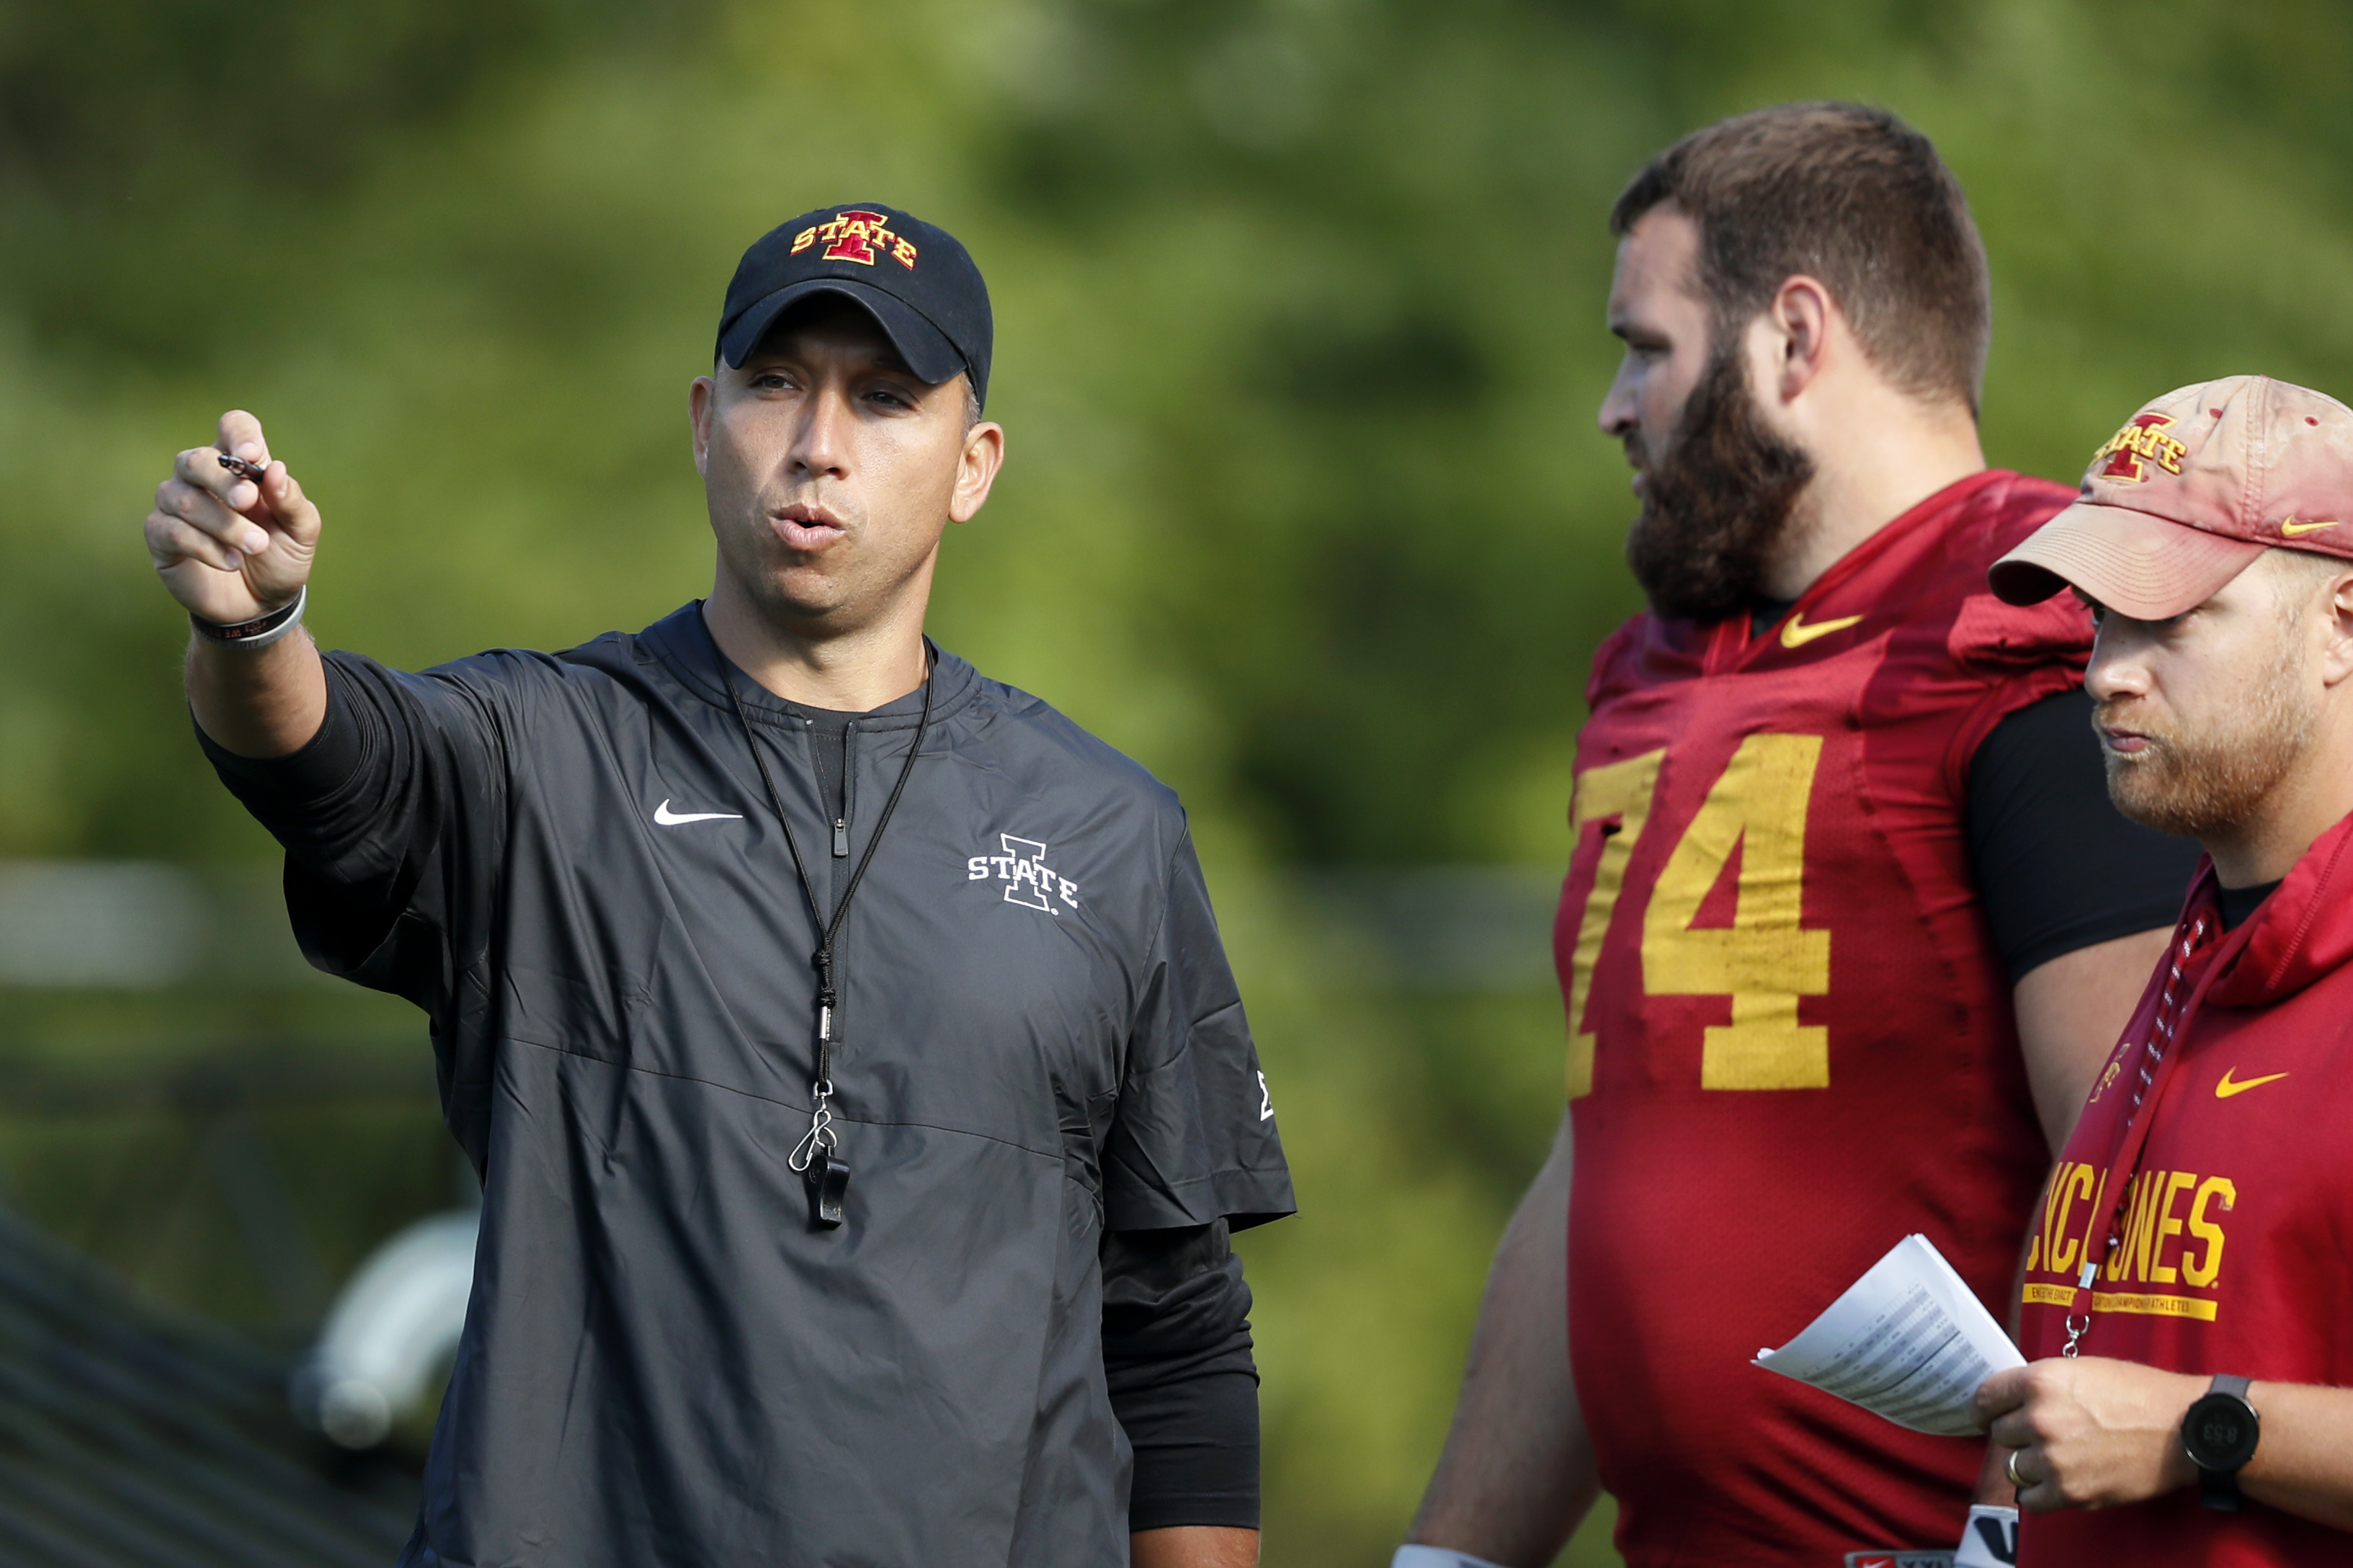 Iowa State primed for best year yet under Matt Campbell